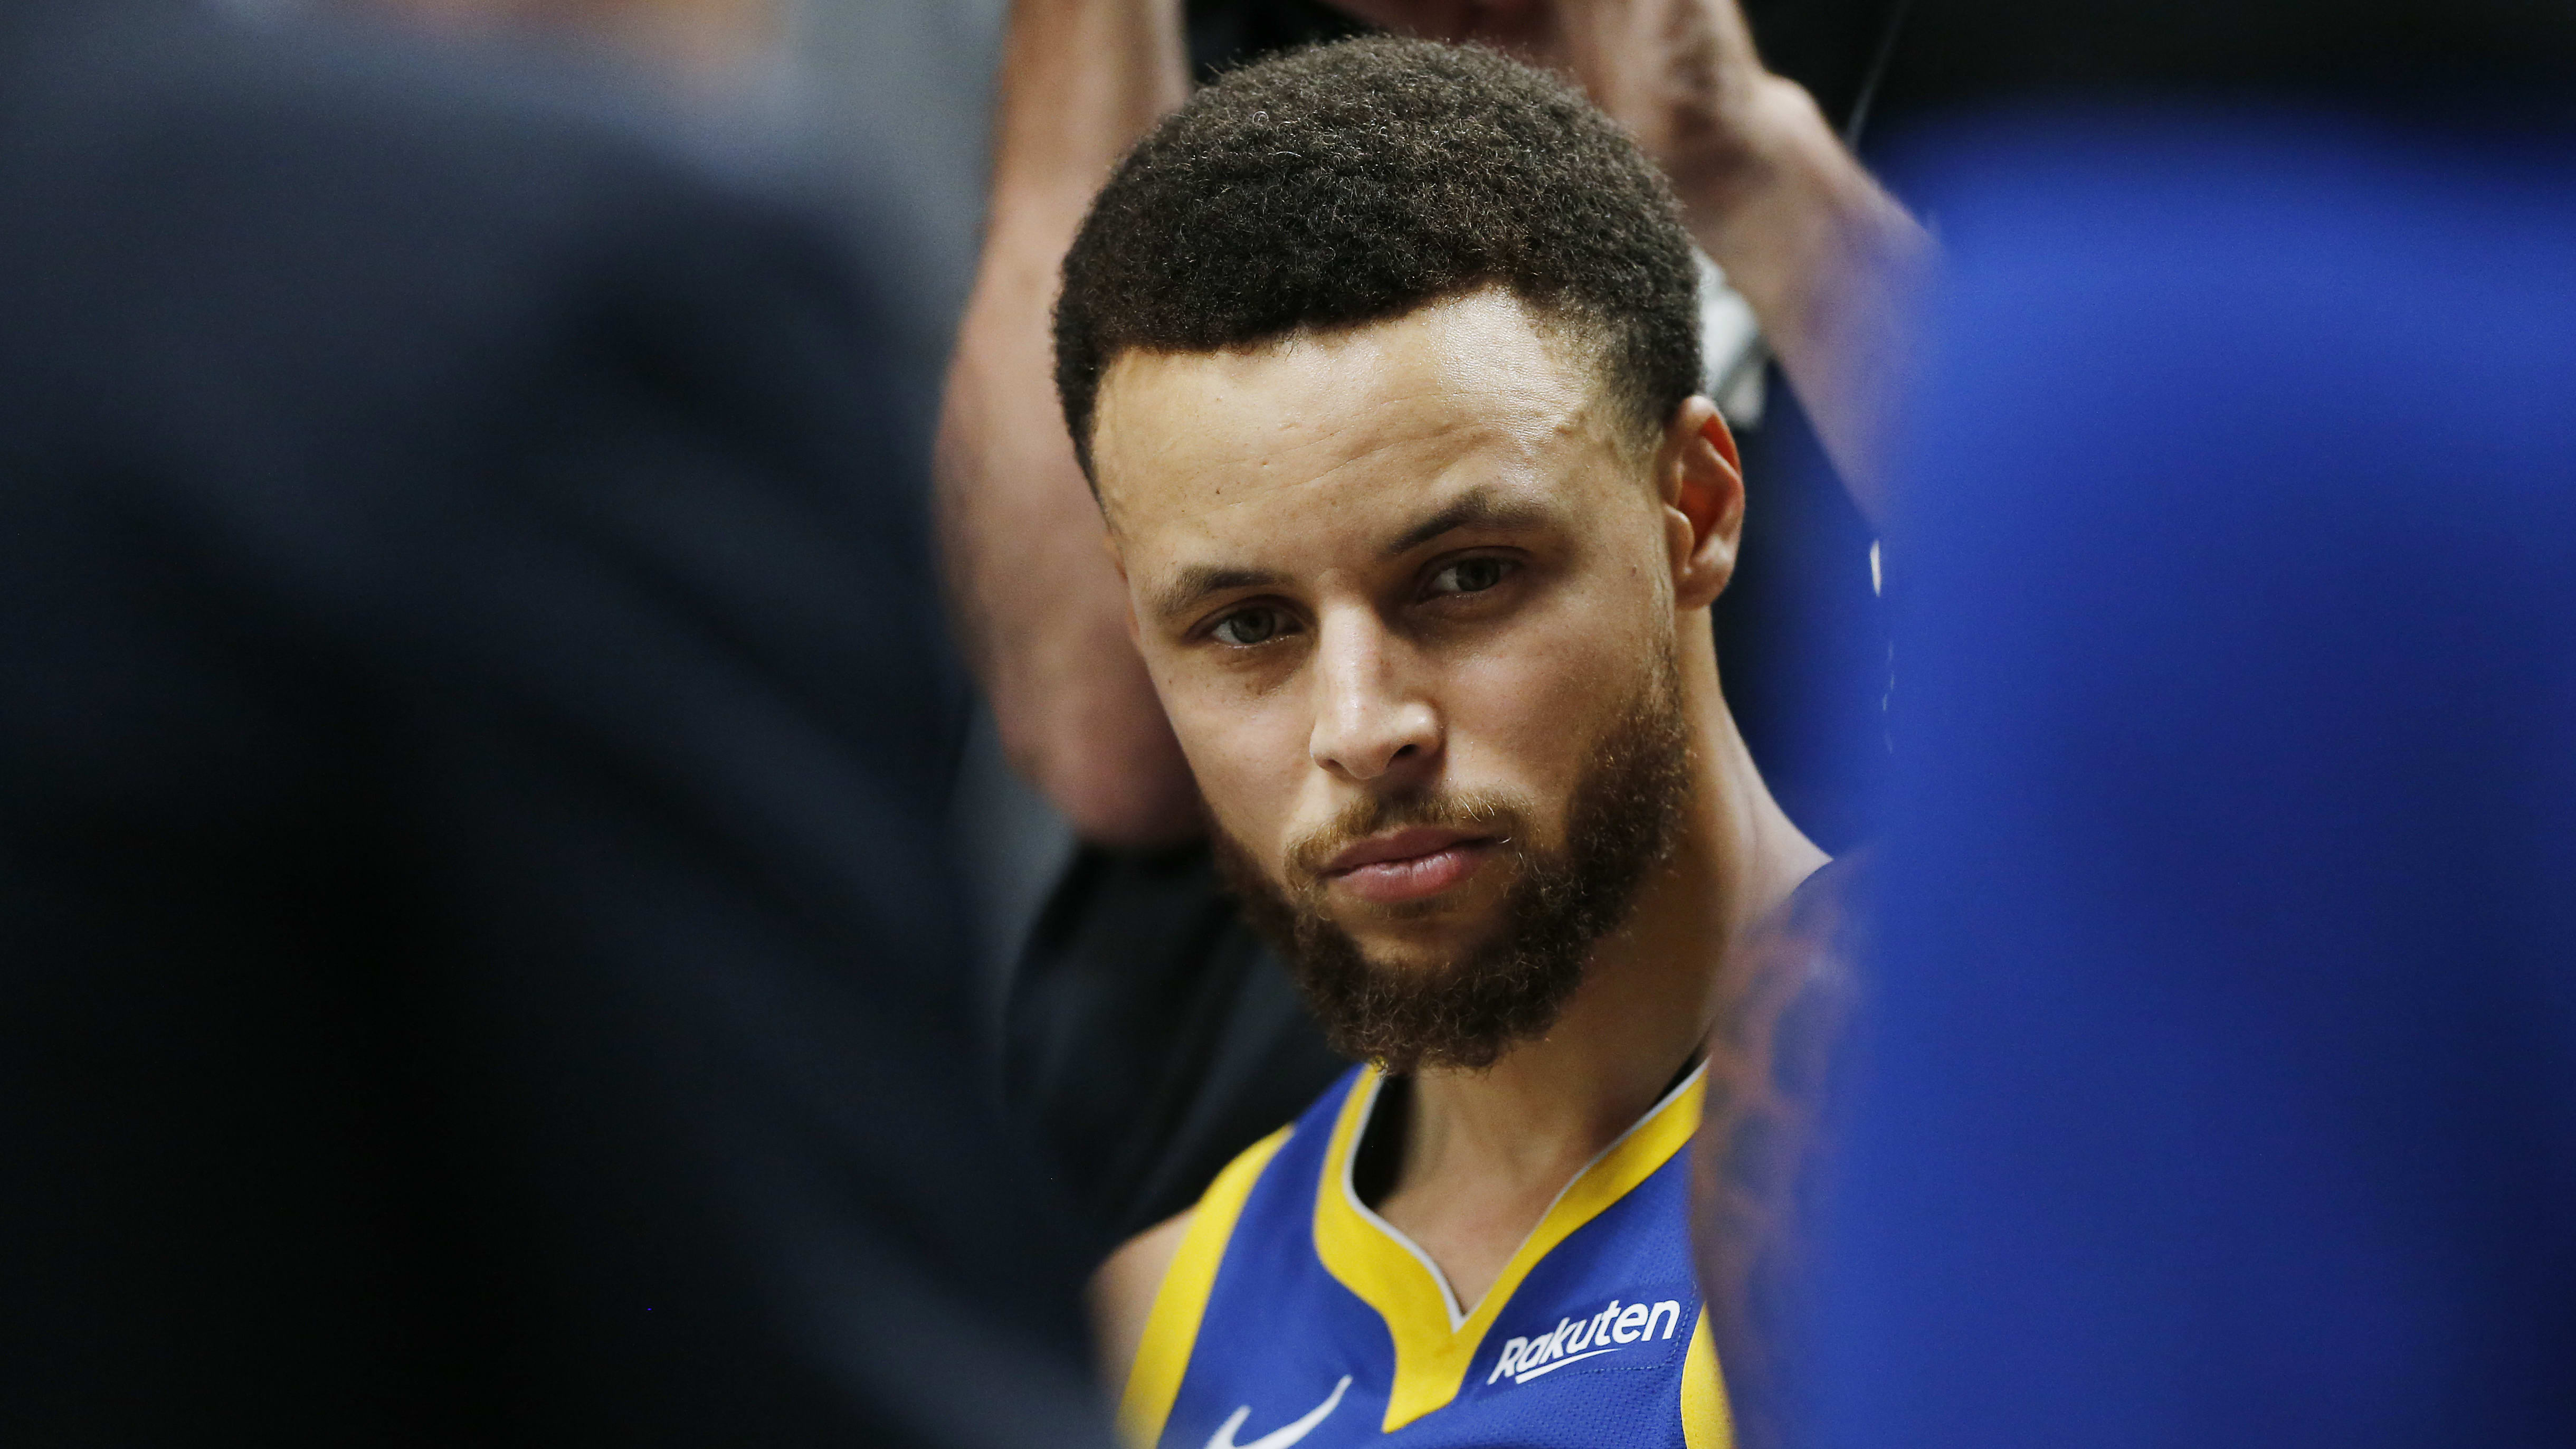 PORTLAND, OREGON - MAY 20: Stephen Curry #30 of the Golden State Warriors looks on during a timeout in game four of the NBA Western Conference Finals against the Portland Trail Blazers at Moda Center on May 20, 2019 in Portland, Oregon. NOTE TO USER: User expressly acknowledges and agrees that, by downloading and or using this photograph, User is consenting to the terms and conditions of the Getty Images License Agreement. (Photo by Jonathan Ferrey/Getty Images)